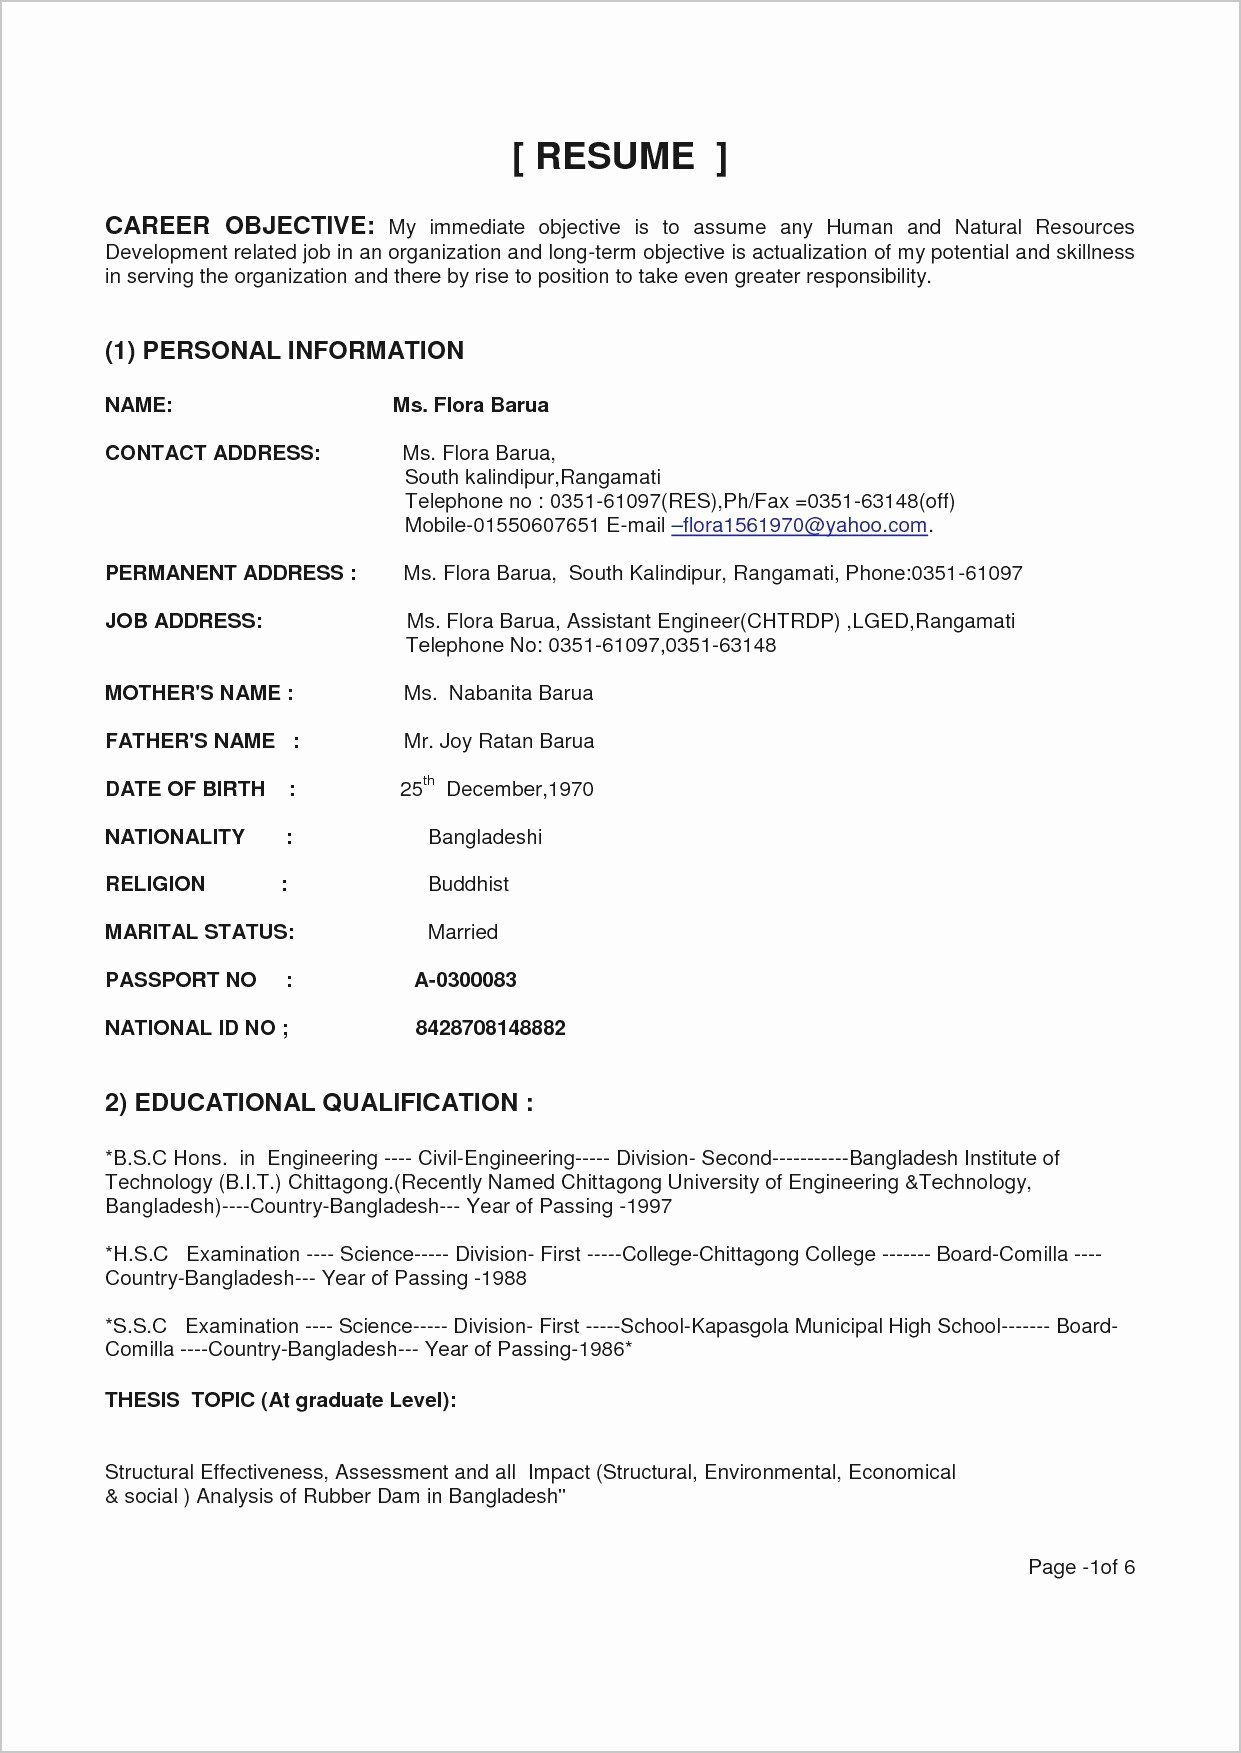 Civil Engineering Resume Examples Lovely 19 Civil Engineering Internship Resume Examples In 2020 Civil Engineer Resume Engineering Resume Resume